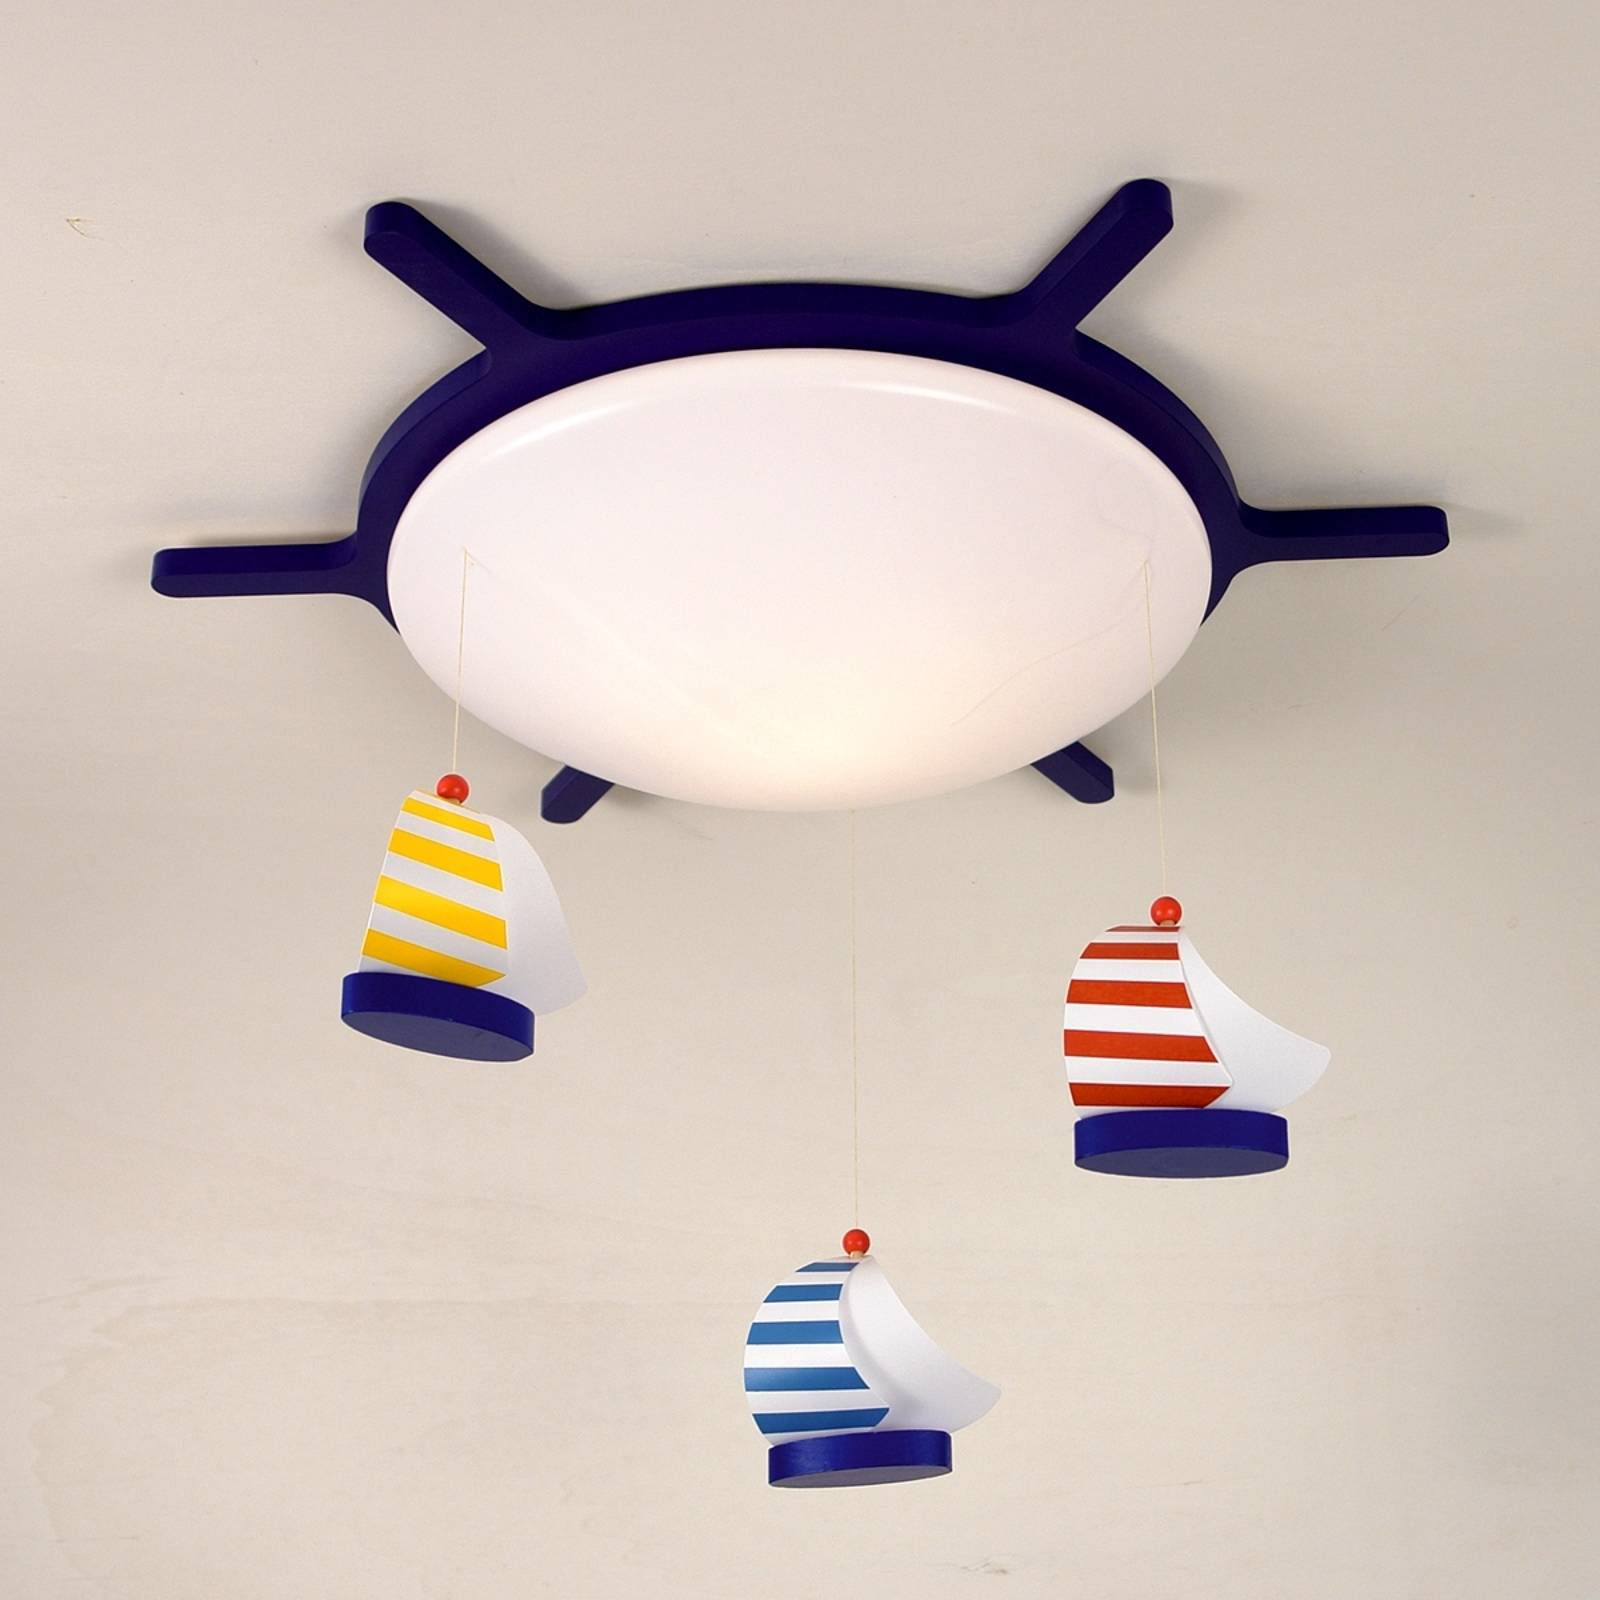 Sailing Boats ceiling light with a boat design from Niermann Standby